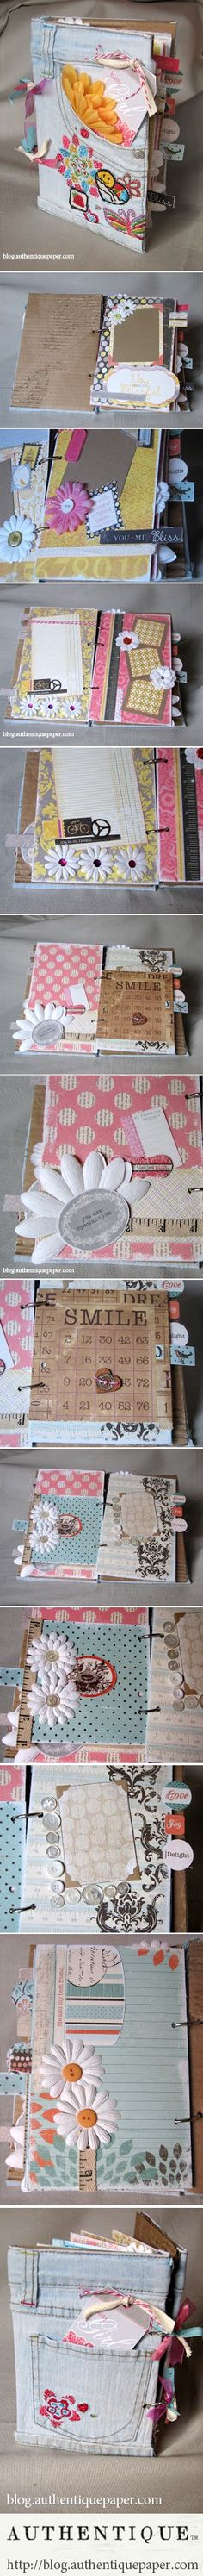 ... with a little pair of jeans | con un paio di jeans e ... tanto amore! #DIY #scrapbooking